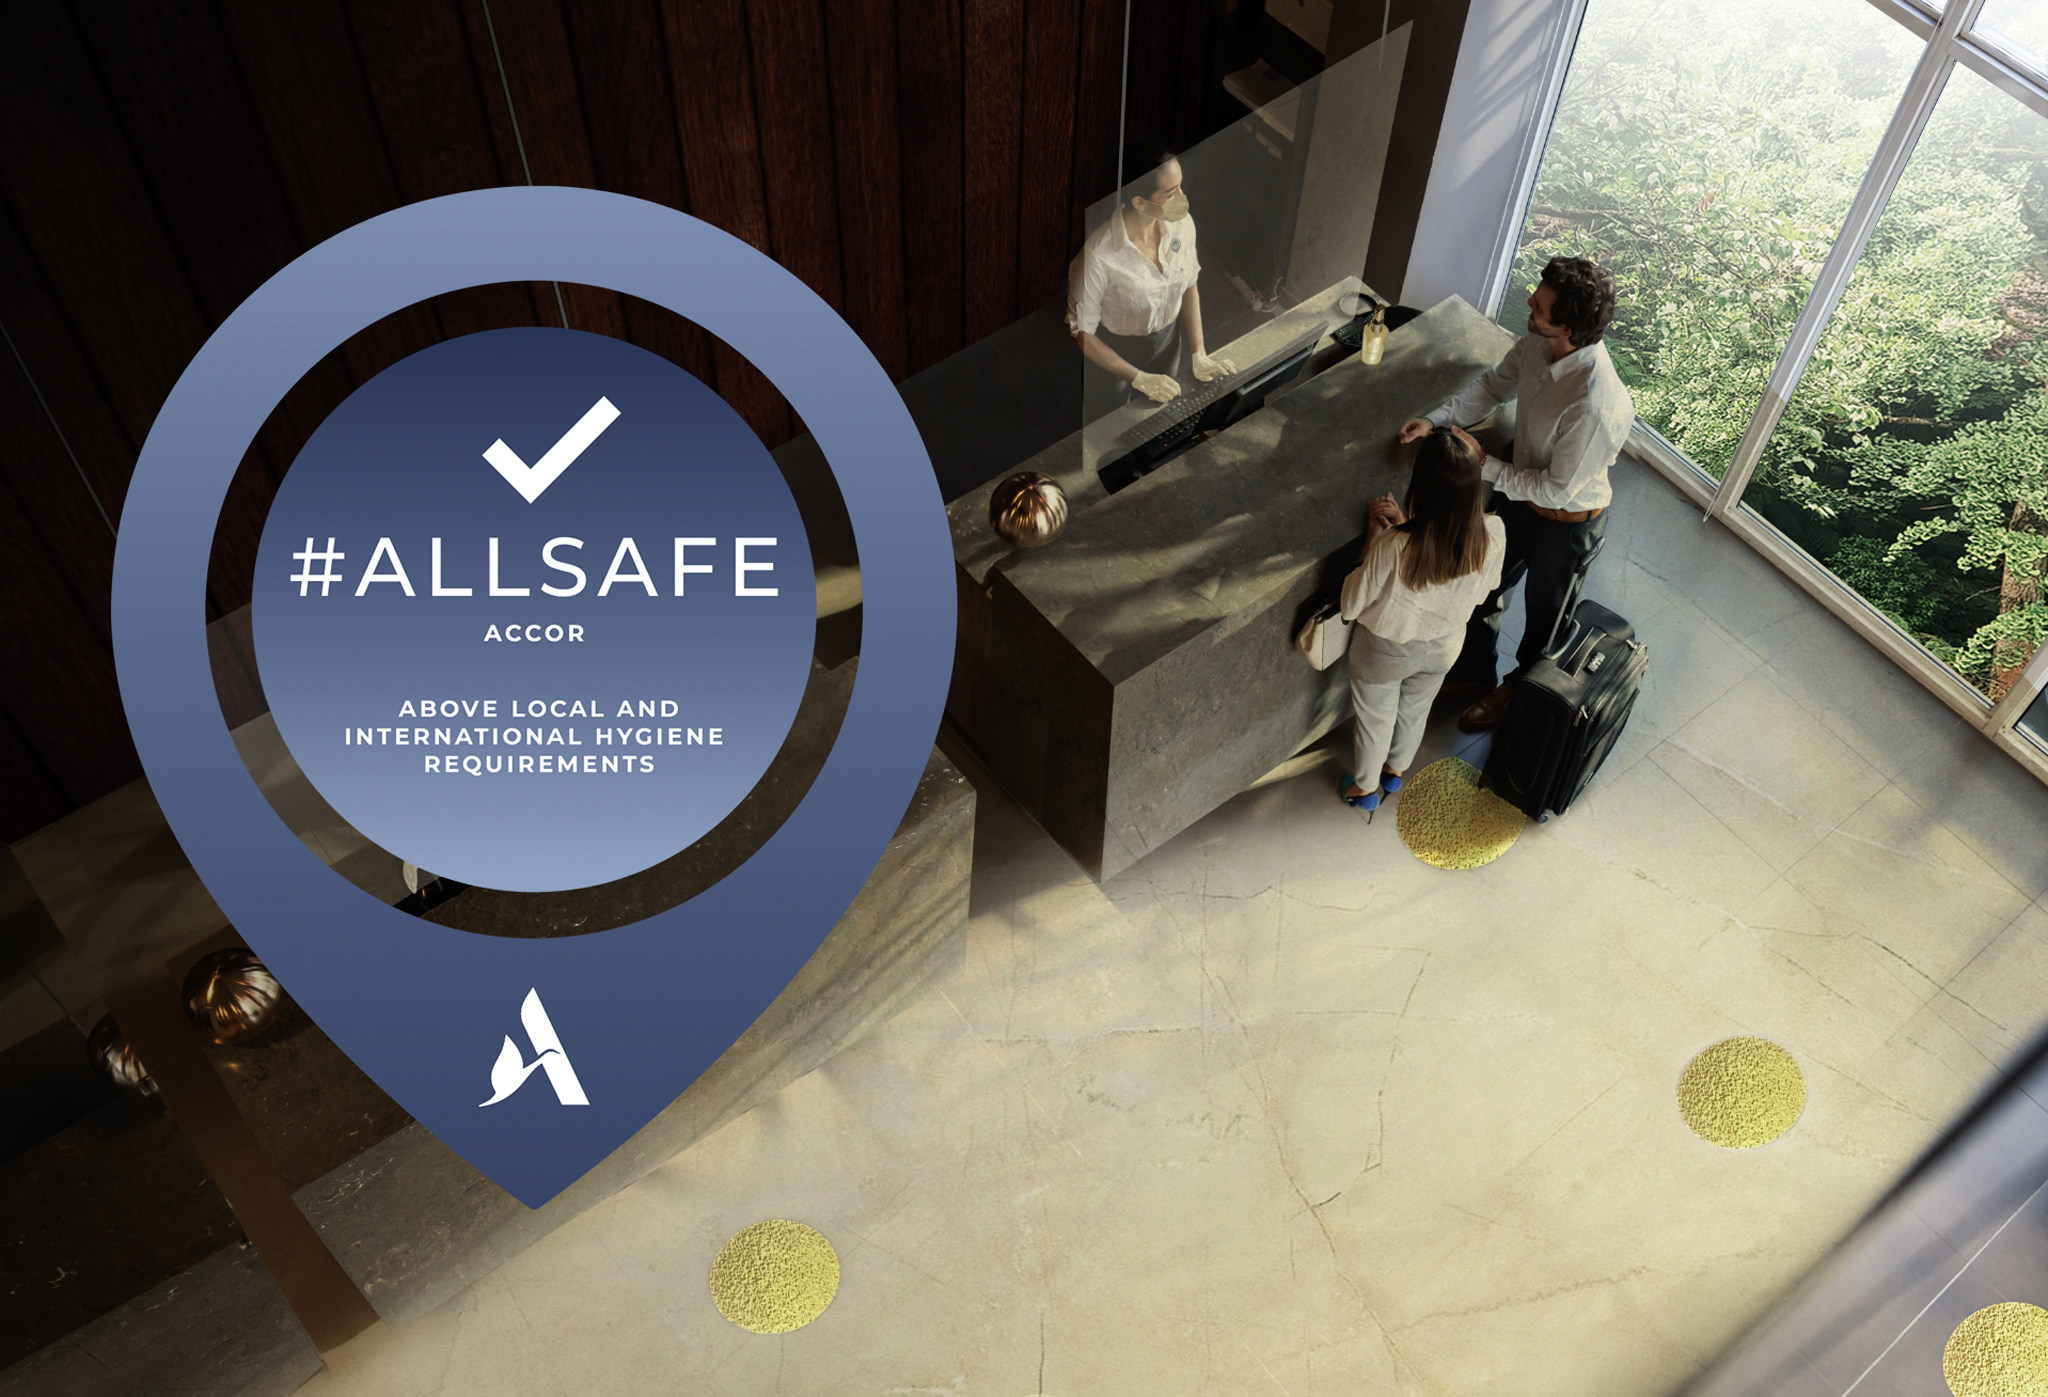 Accor's ALLSAFE cleanliness and hygiene label